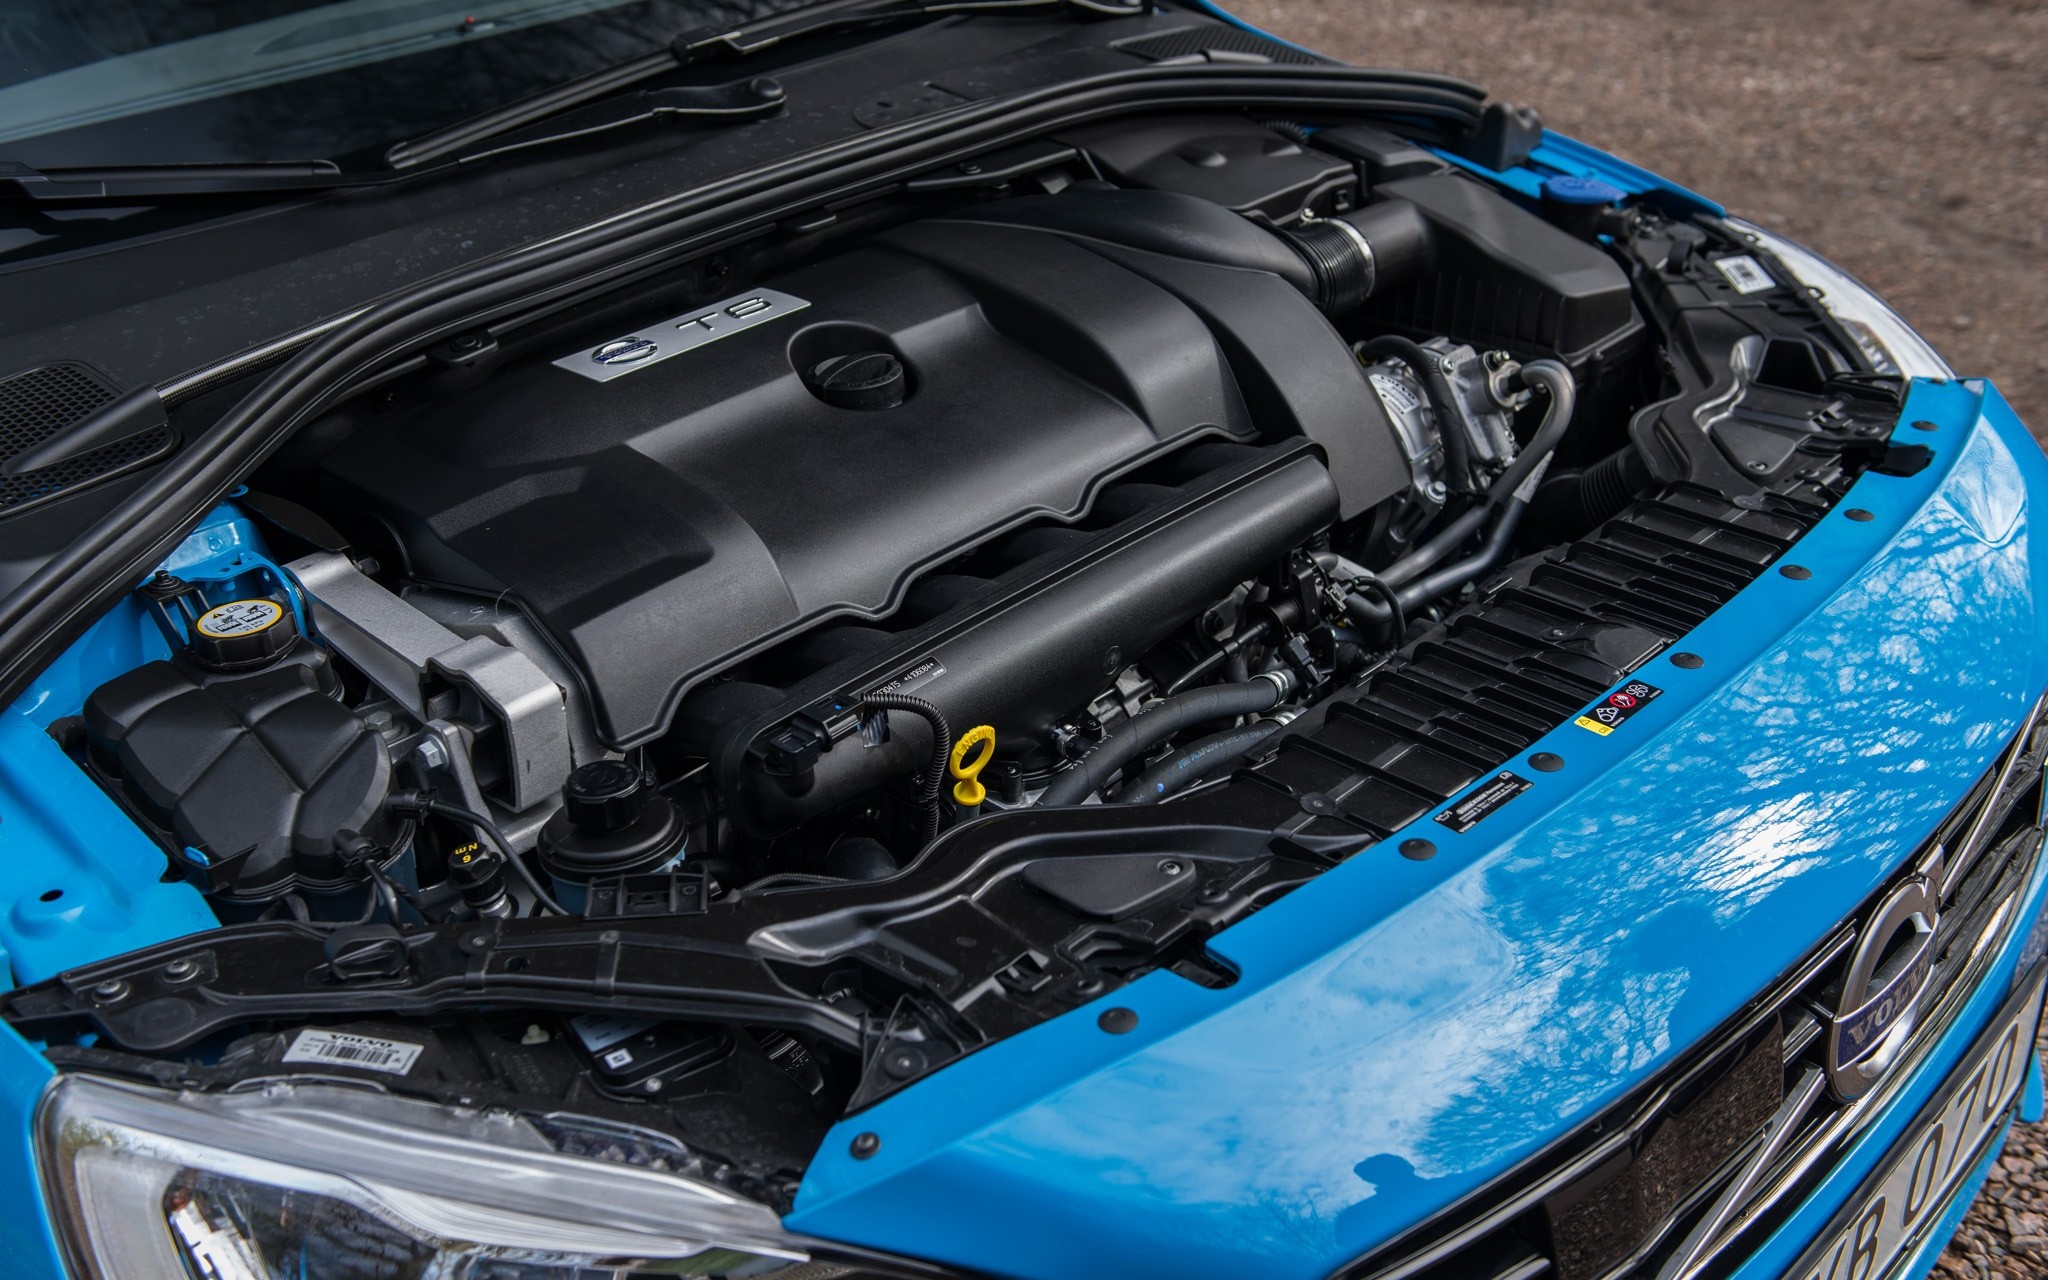 Volvo S60: Engine specifications